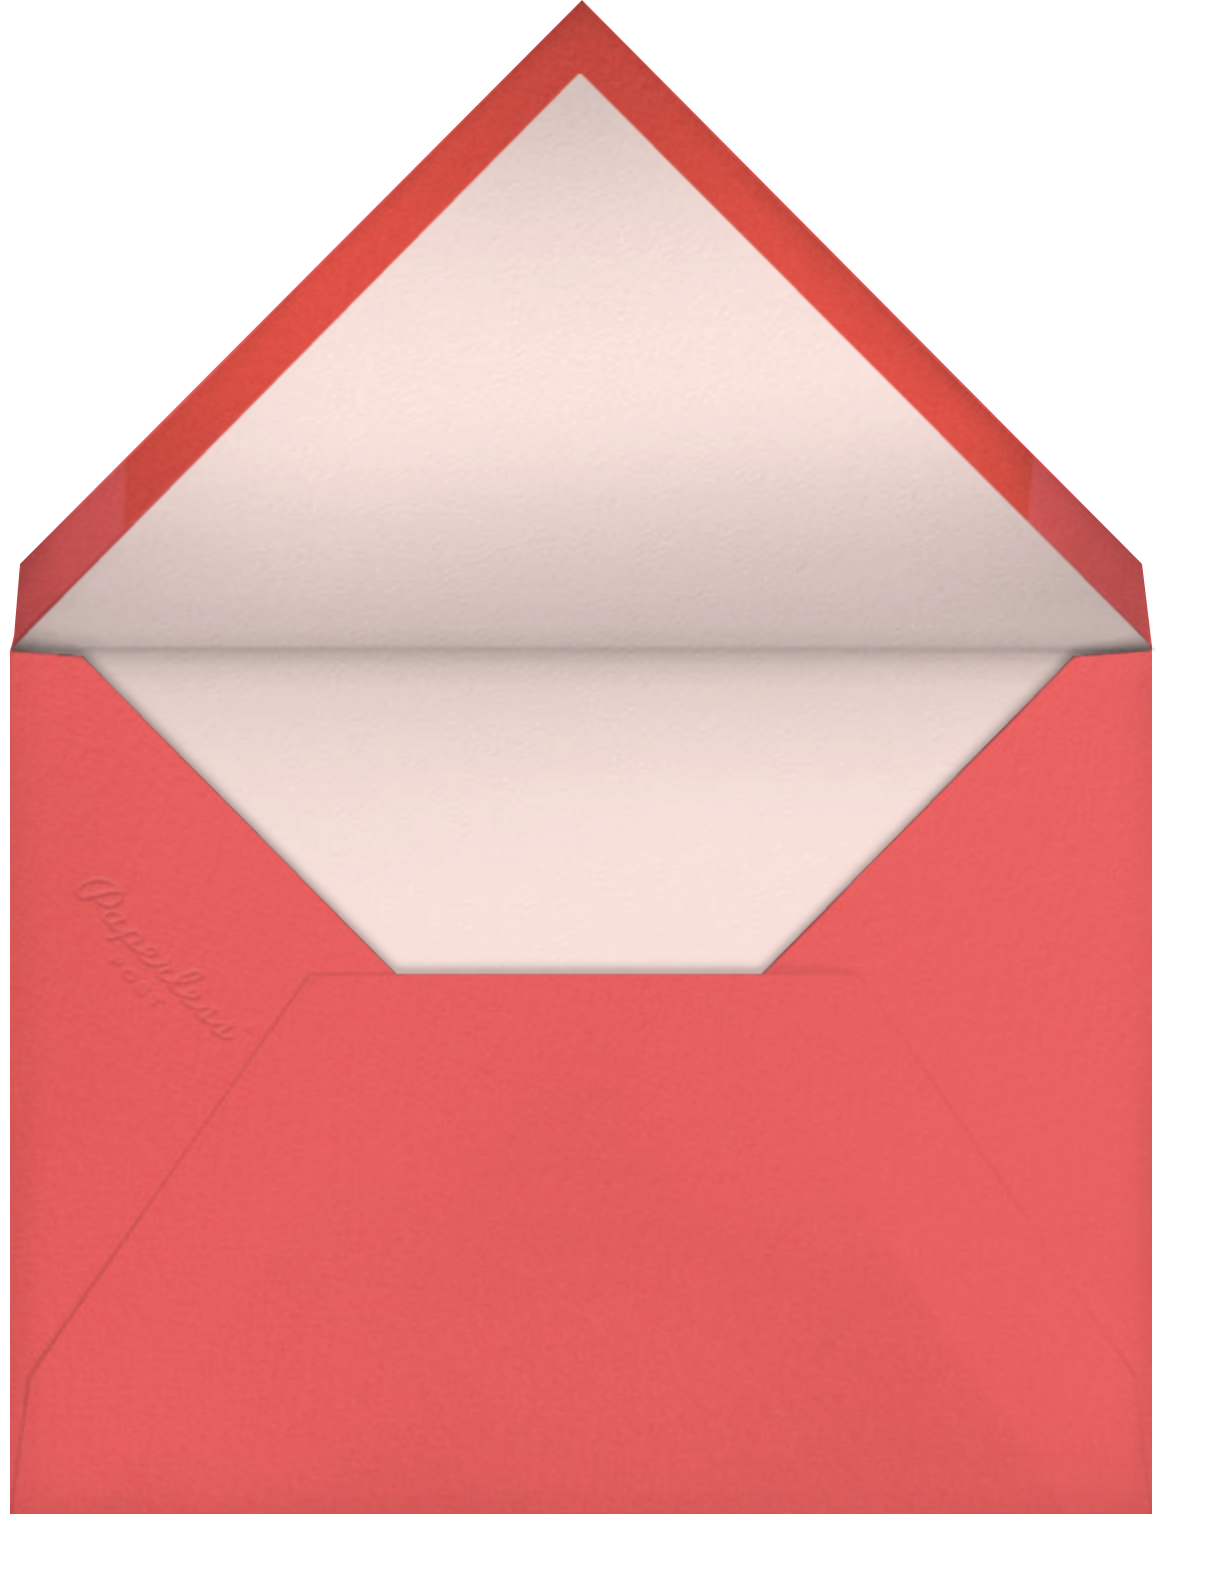 Flower Cones (Square) (Dylan Mierzwinski) - Red Cap Cards - Thank you - envelope back